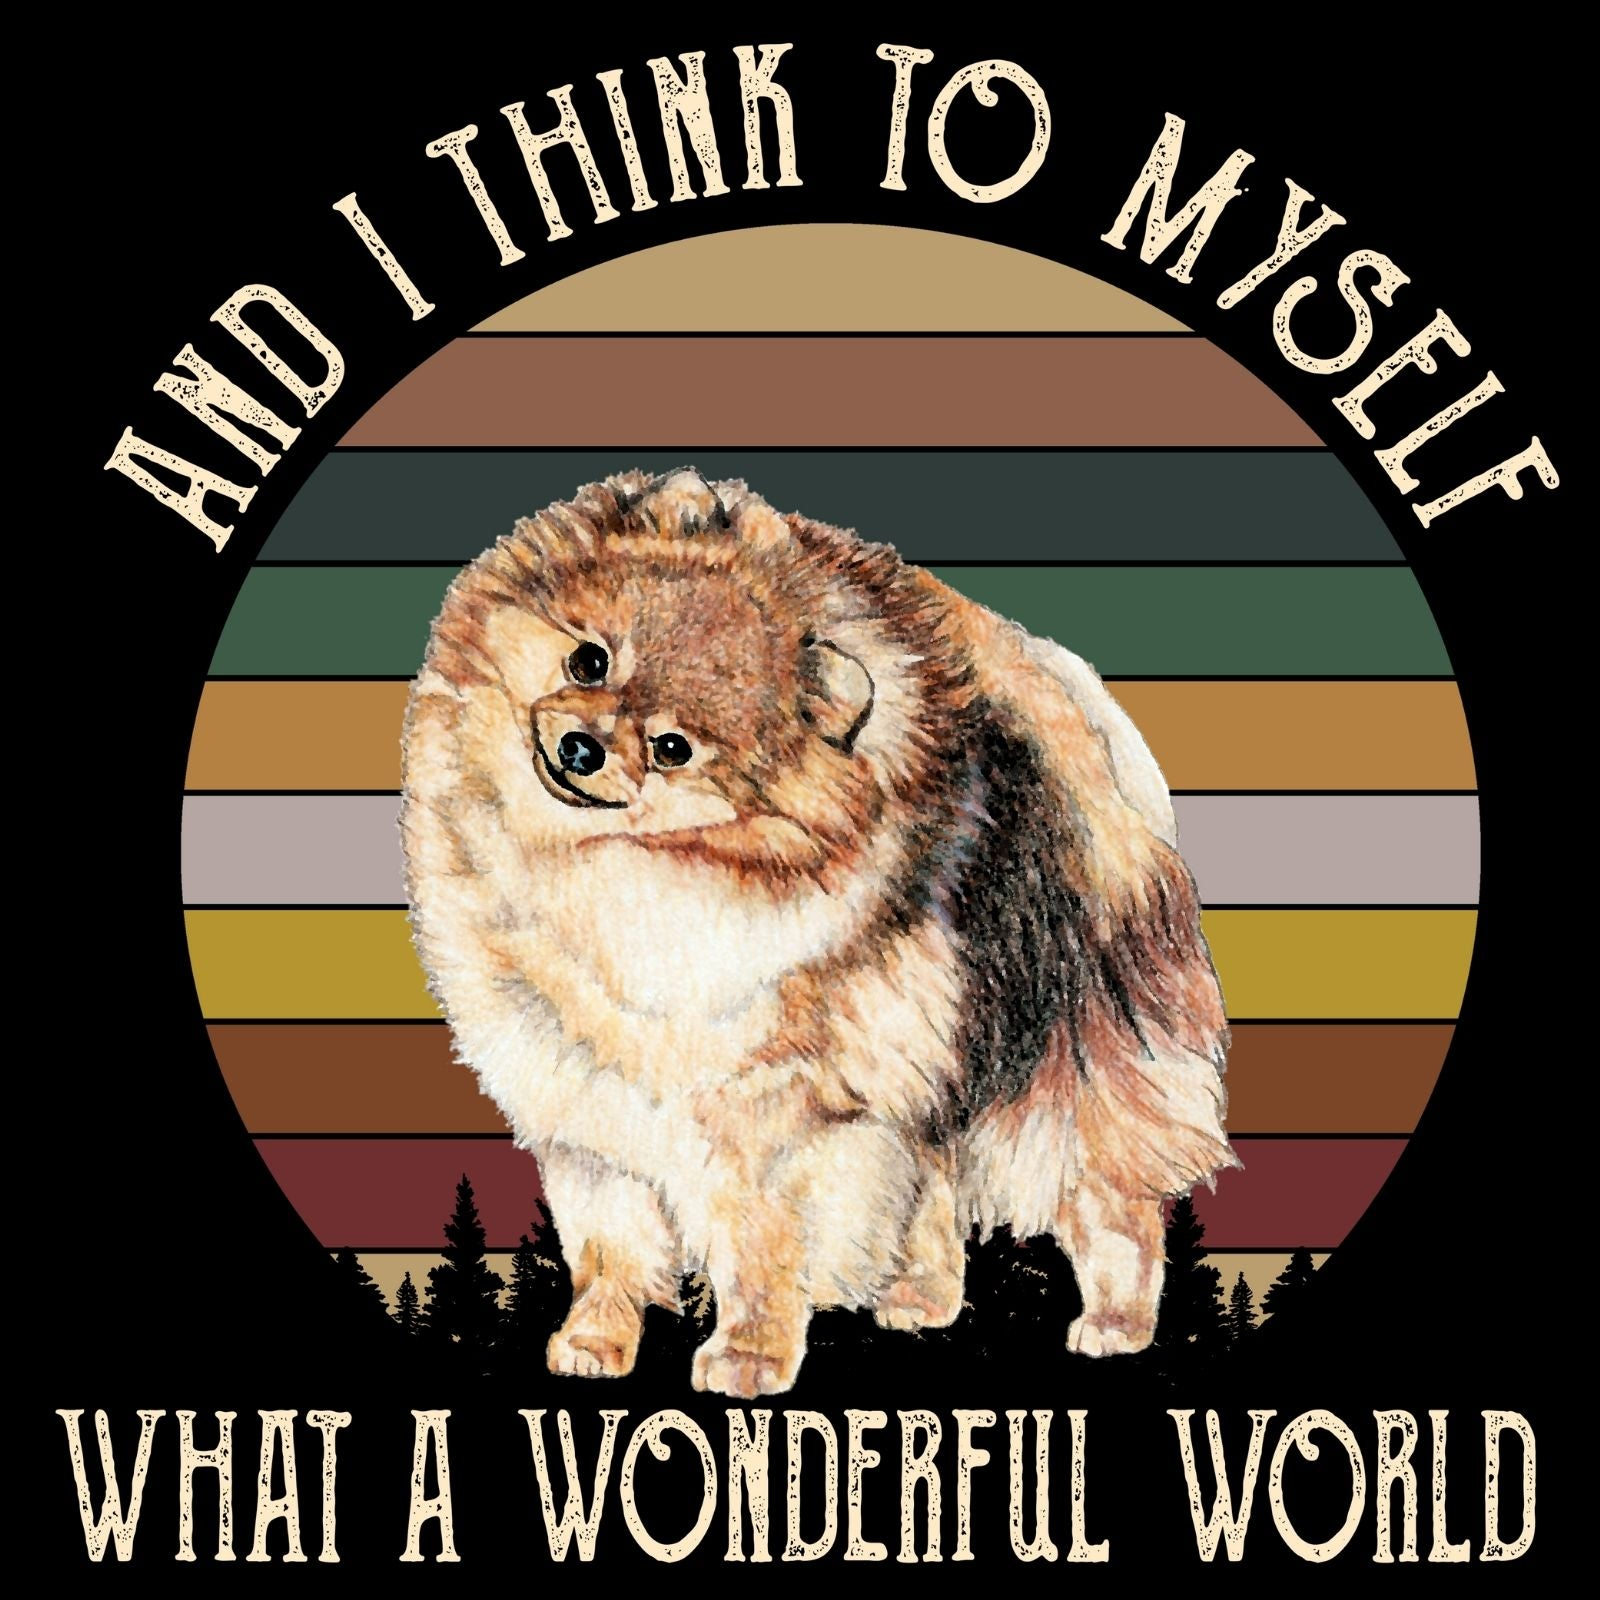 And I Think To Myself What A Wonderful World POMERANIAN - Bastard Graphics